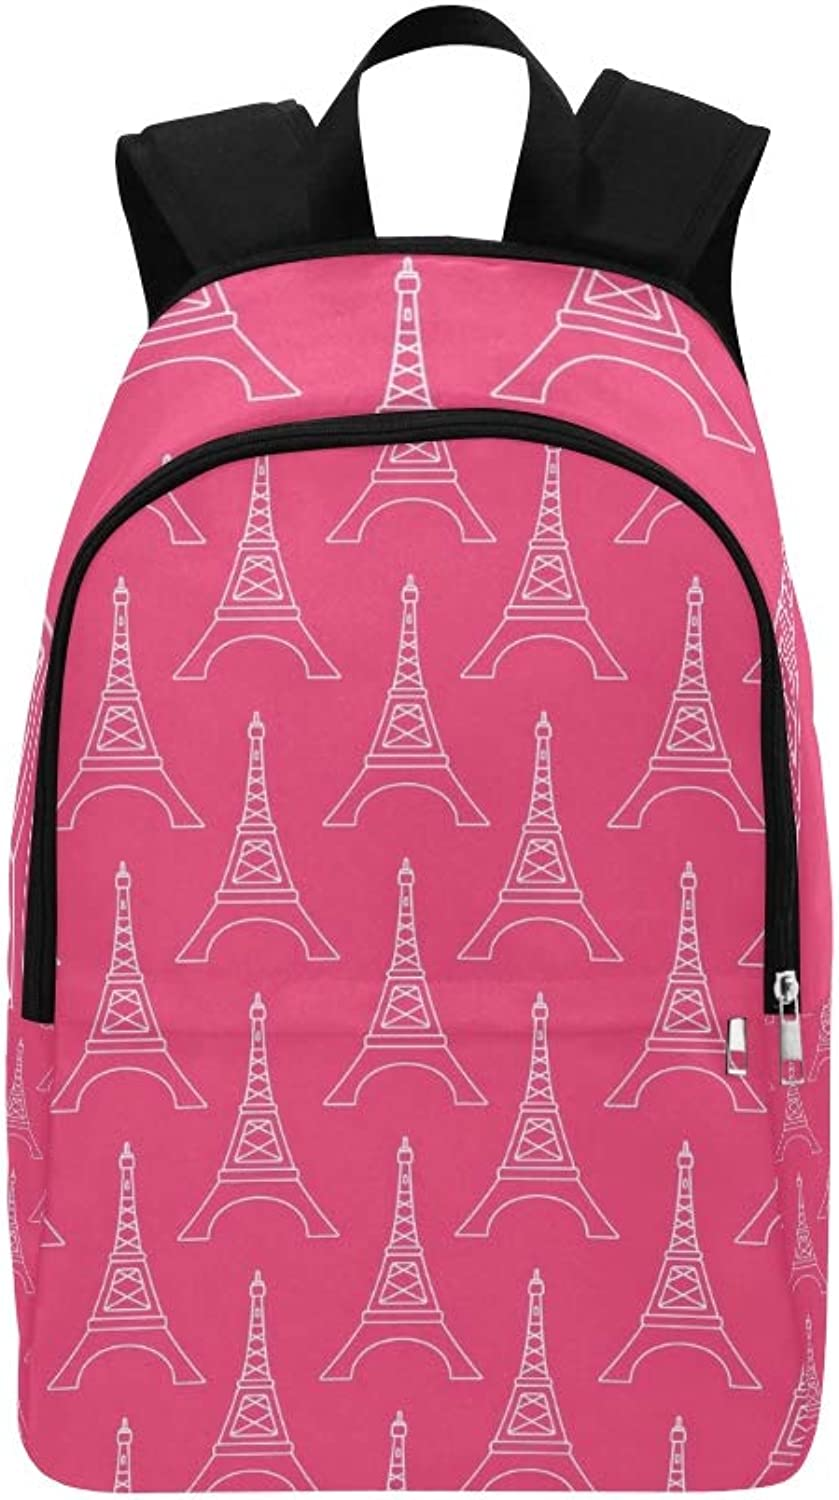 Eiffel Tower Shapes Casual Daypack Travel Bag College School Backpack for Mens and Women